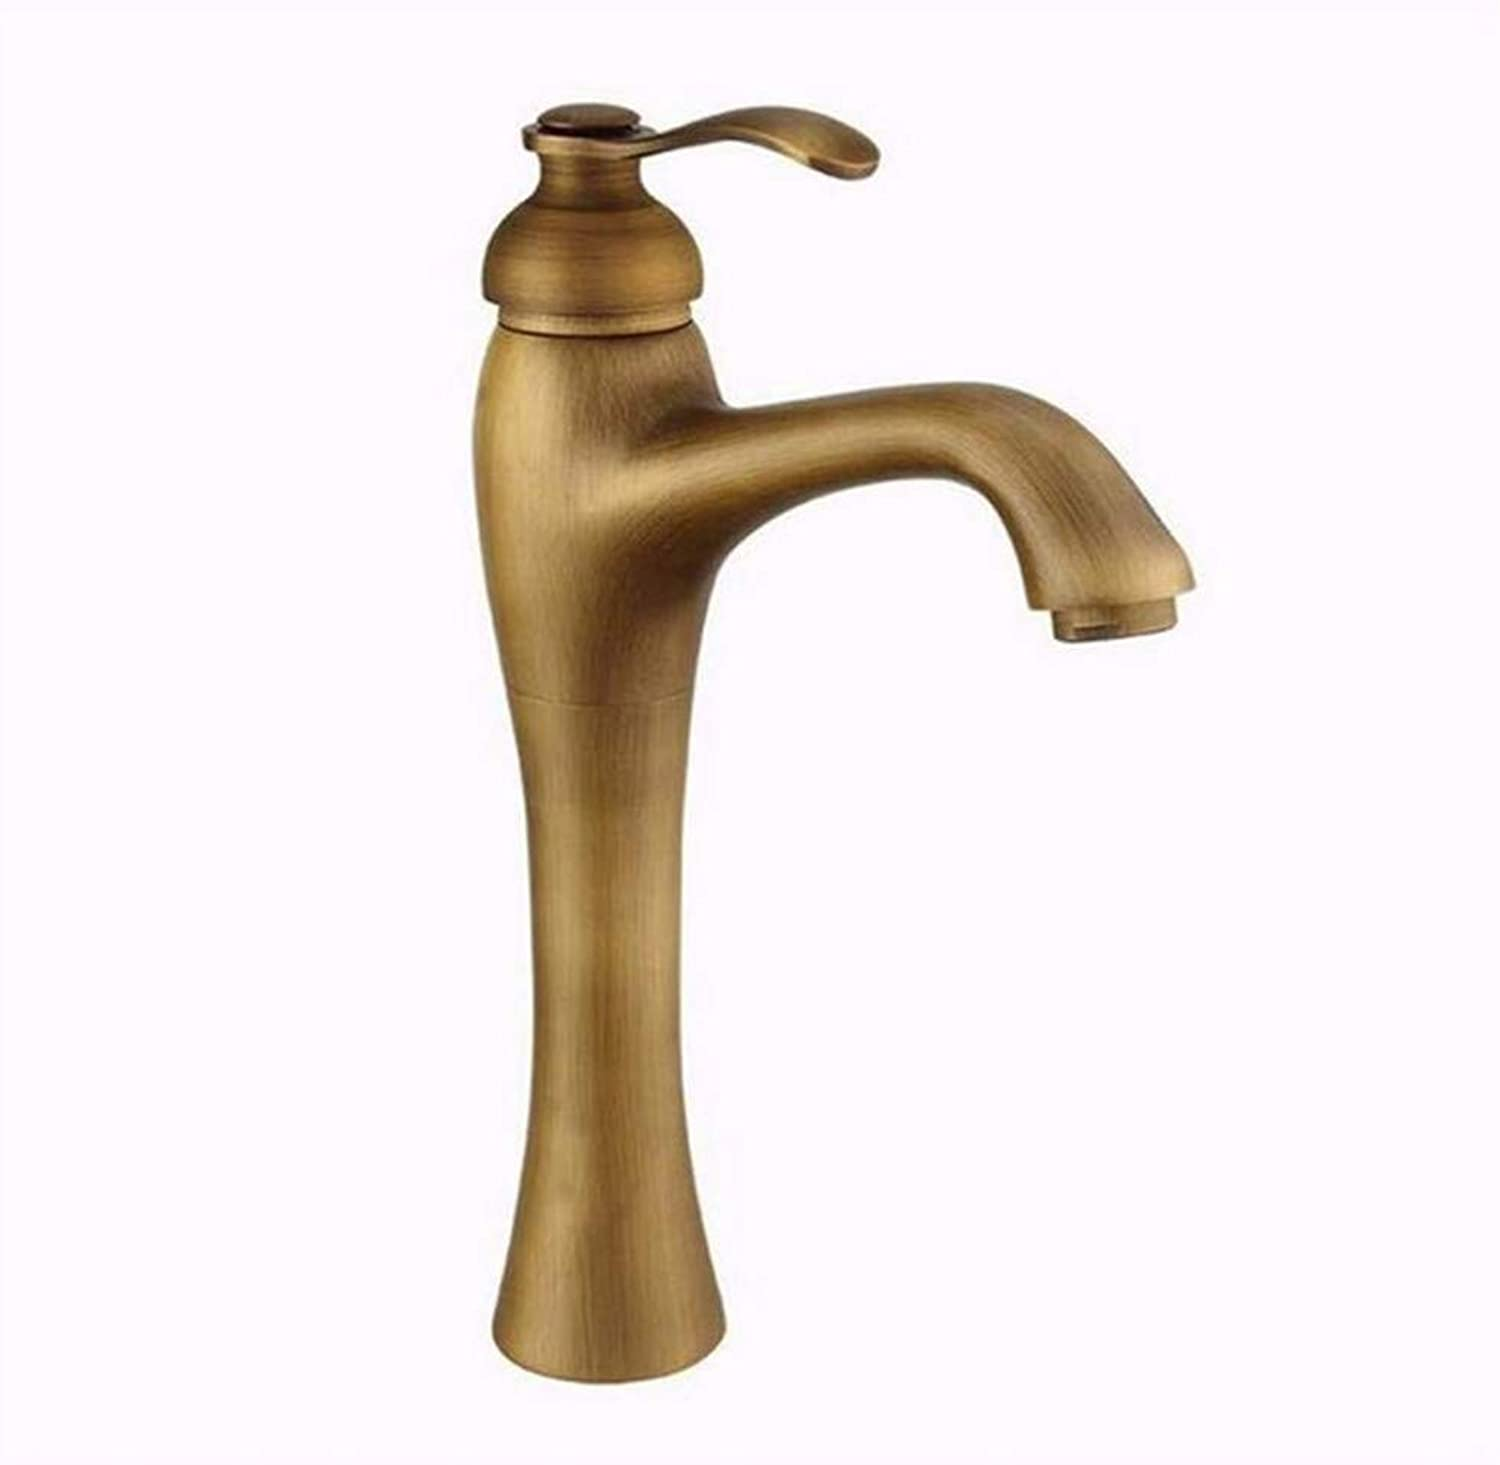 Luxury Plated Mixer Faucet Bathroom Sink Mixer Tap Faucet European Retro Style Copper Basin Hot and Cold